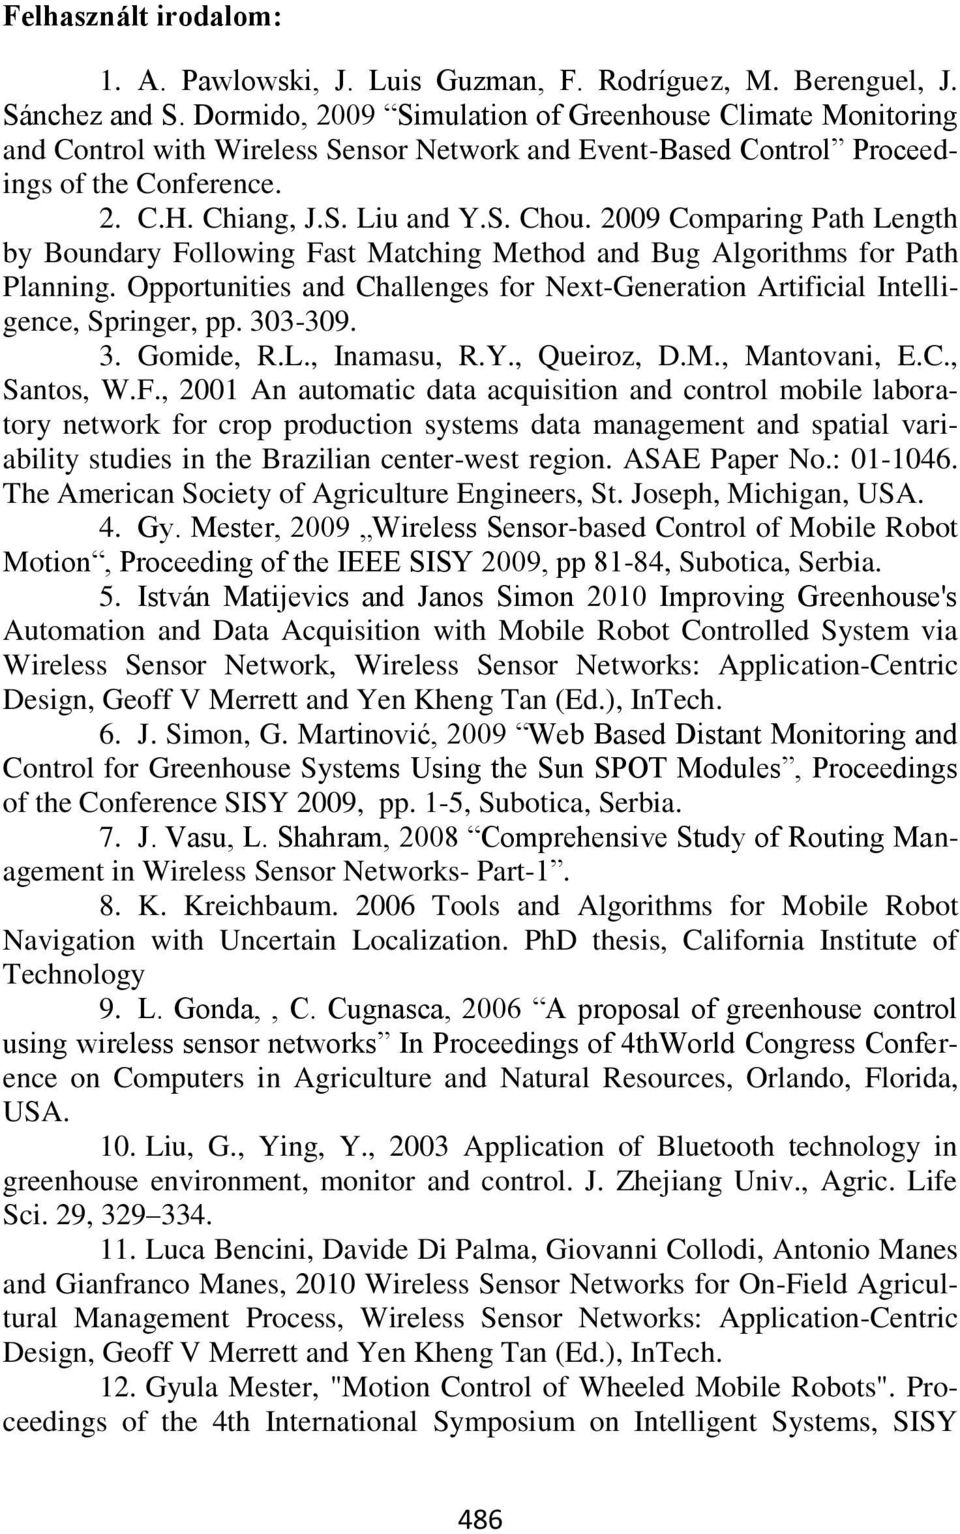 2009 Comparing Path Length by Boundary Following Fast Matching Method and Bug Algorithms for Path Planning. Opportunities and Challenges for Next-Generation Artificial Intelligence, Springer, pp.